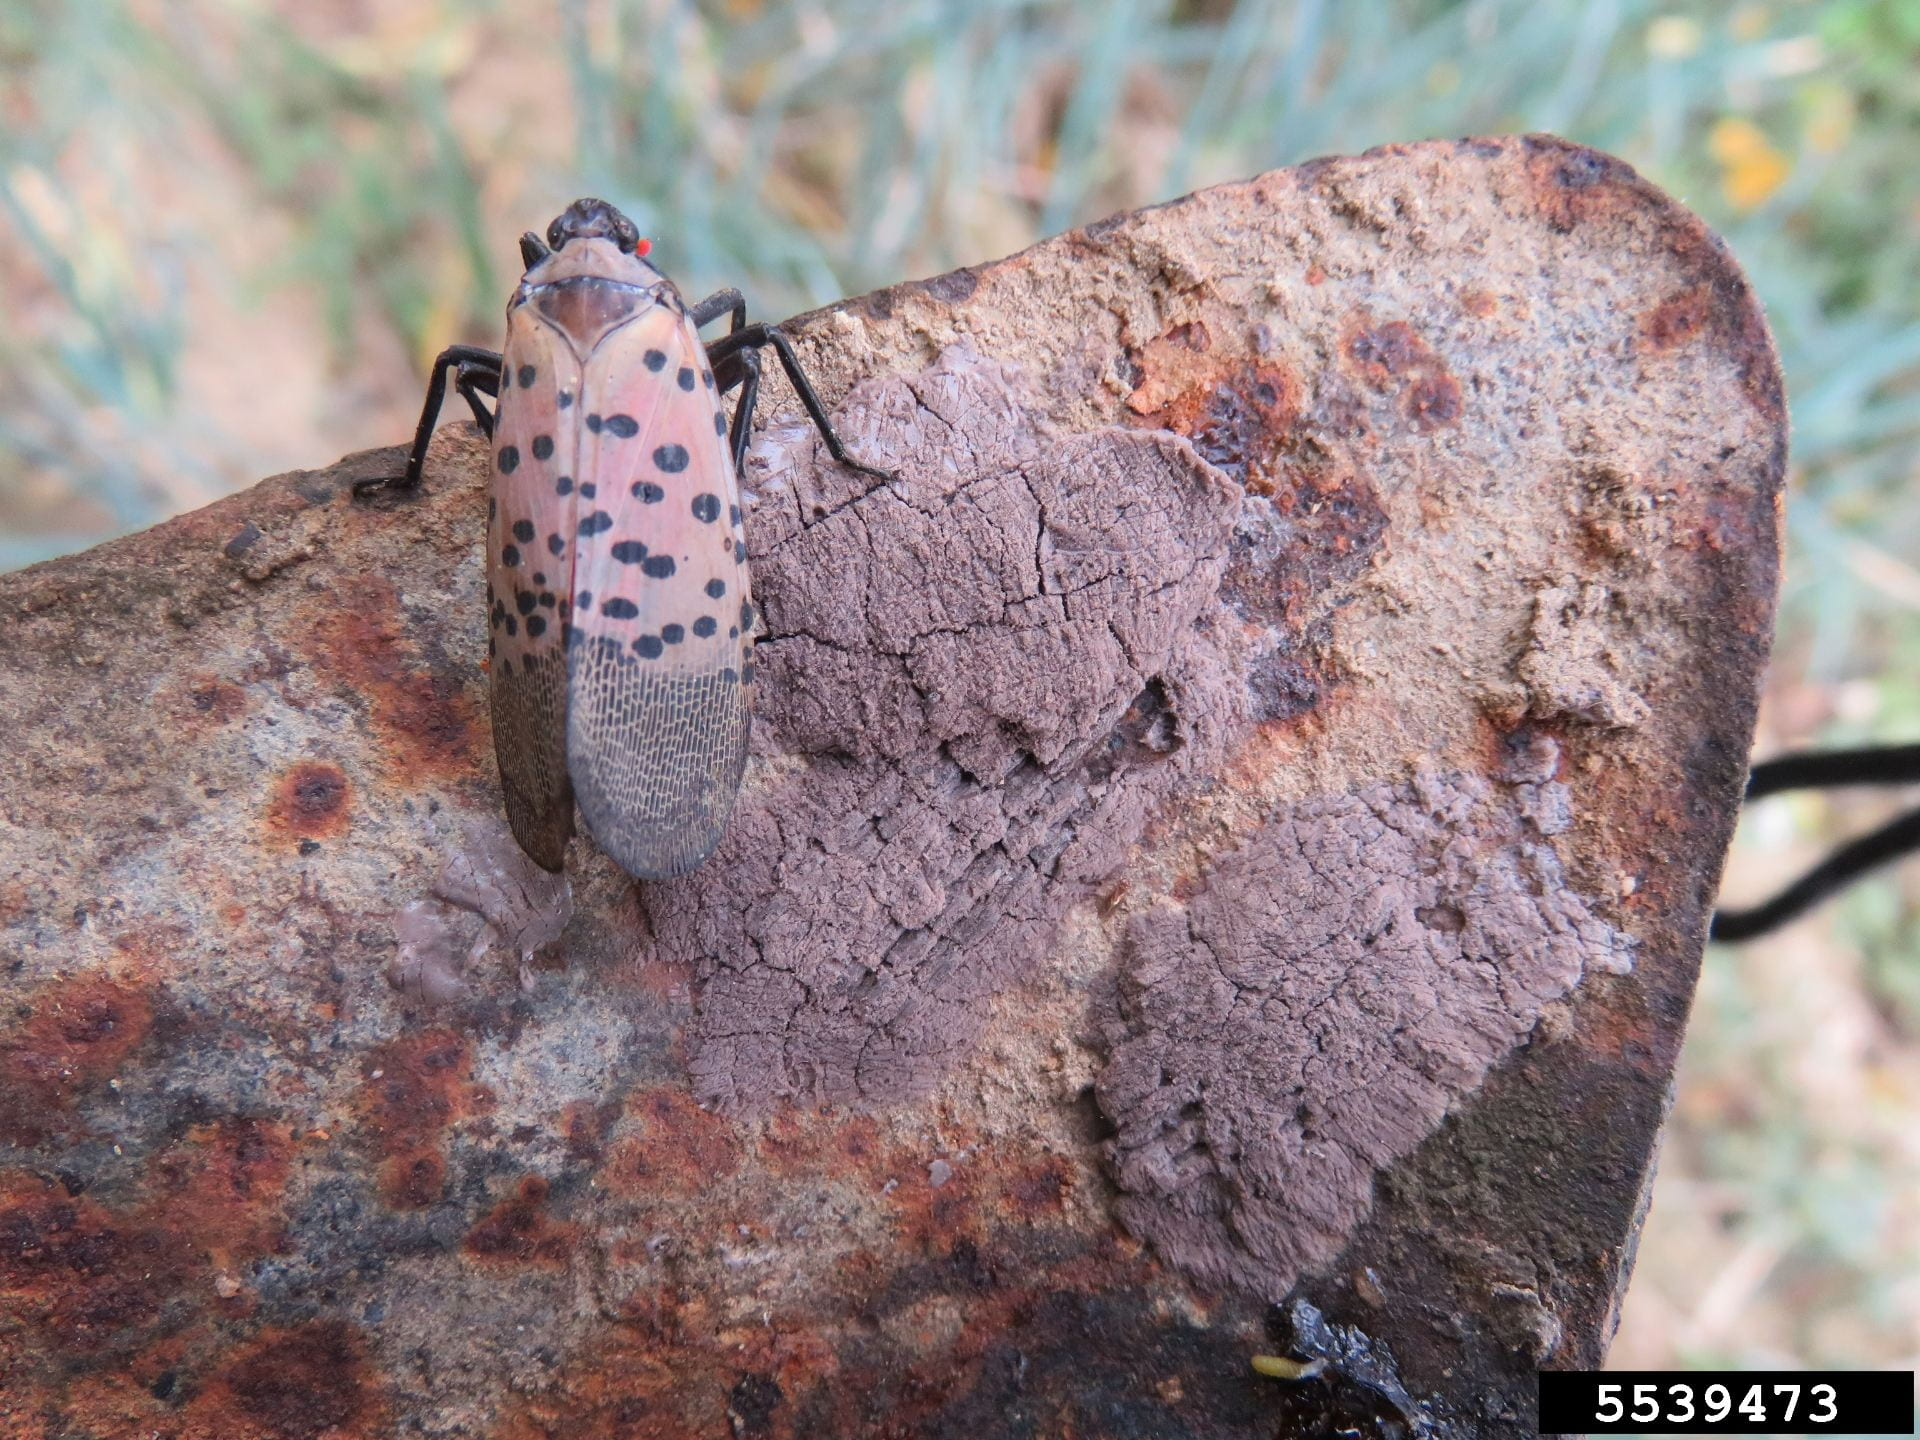 Adult spotted lanternfly with covered egg masses on rusty shovel